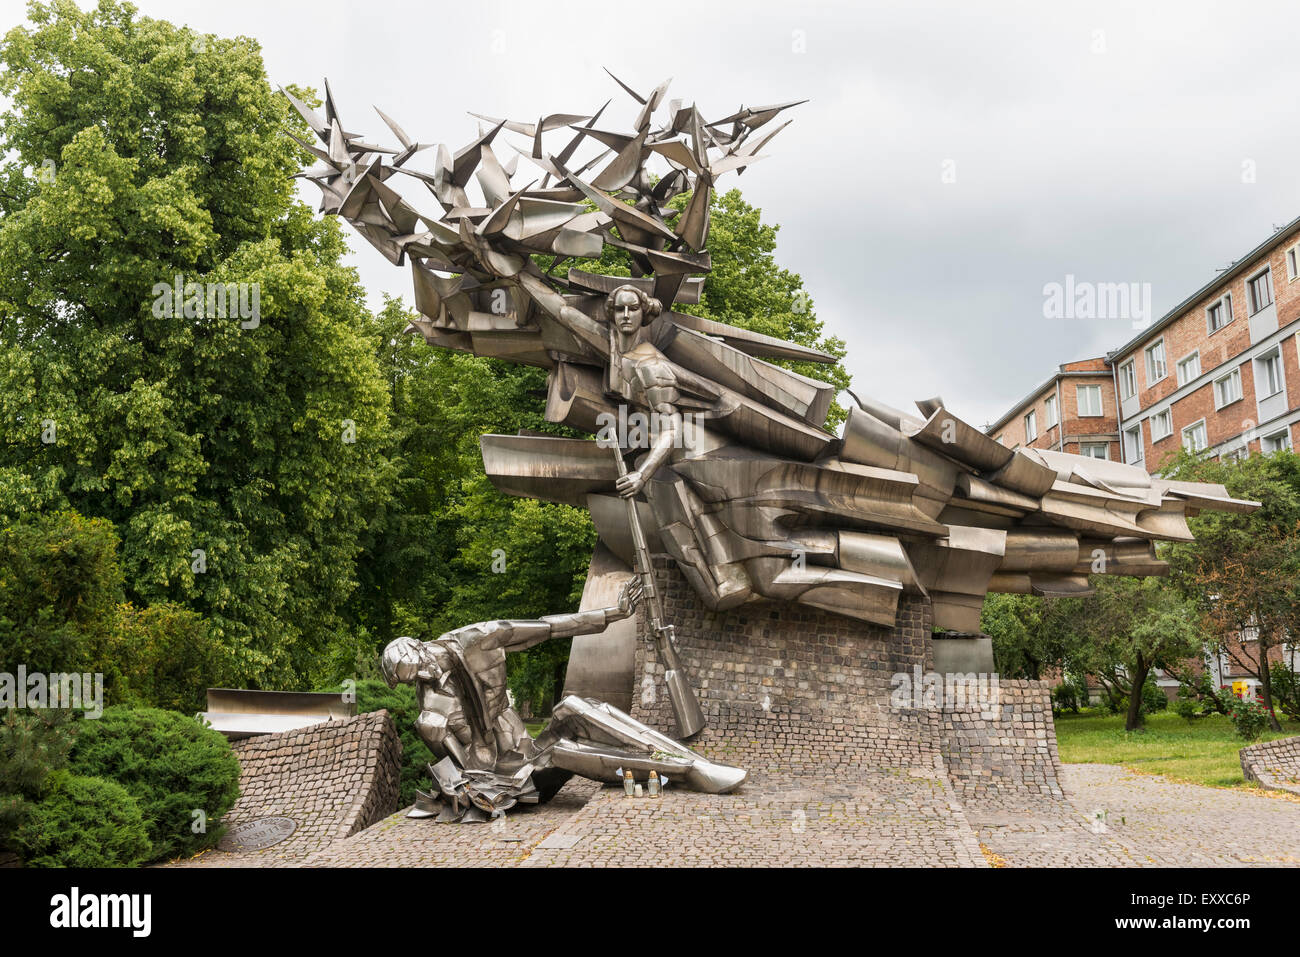 Monument to the Post Office Workers in Gdansk who were the first casualties of World War Two, Gdansk, Poland, Europe - Stock Image